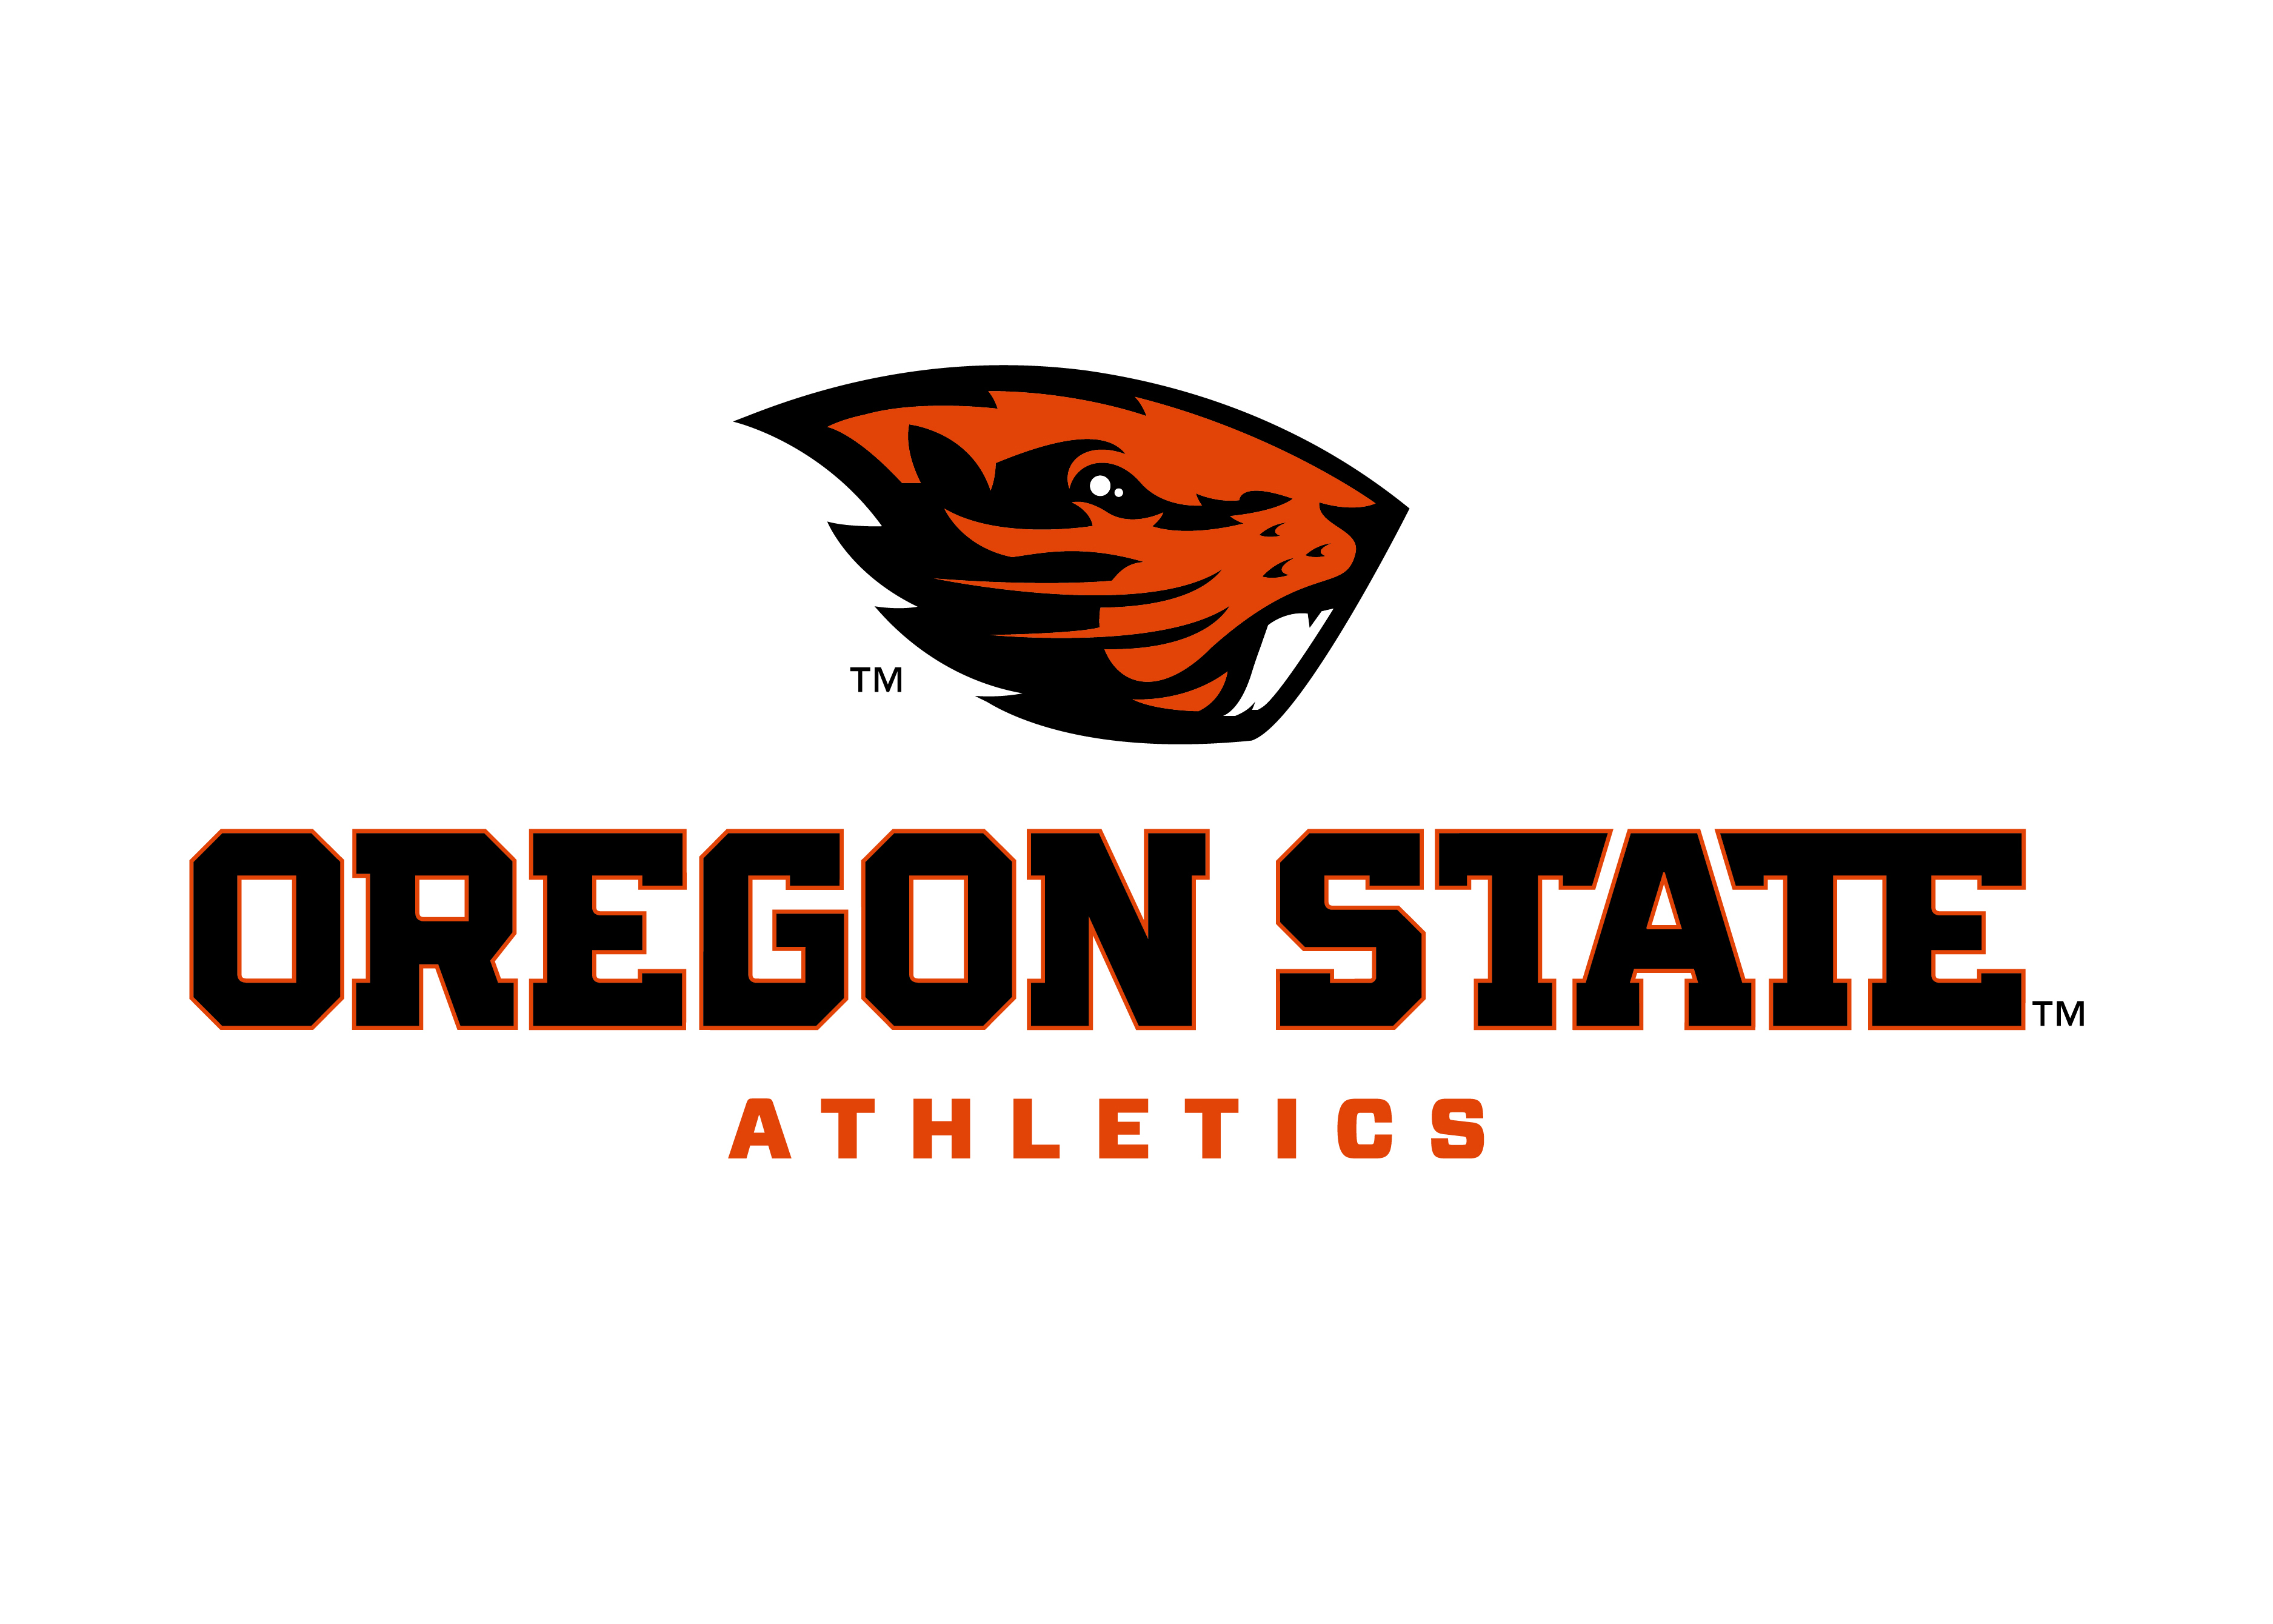 Can I get accepted to Oregon State university?